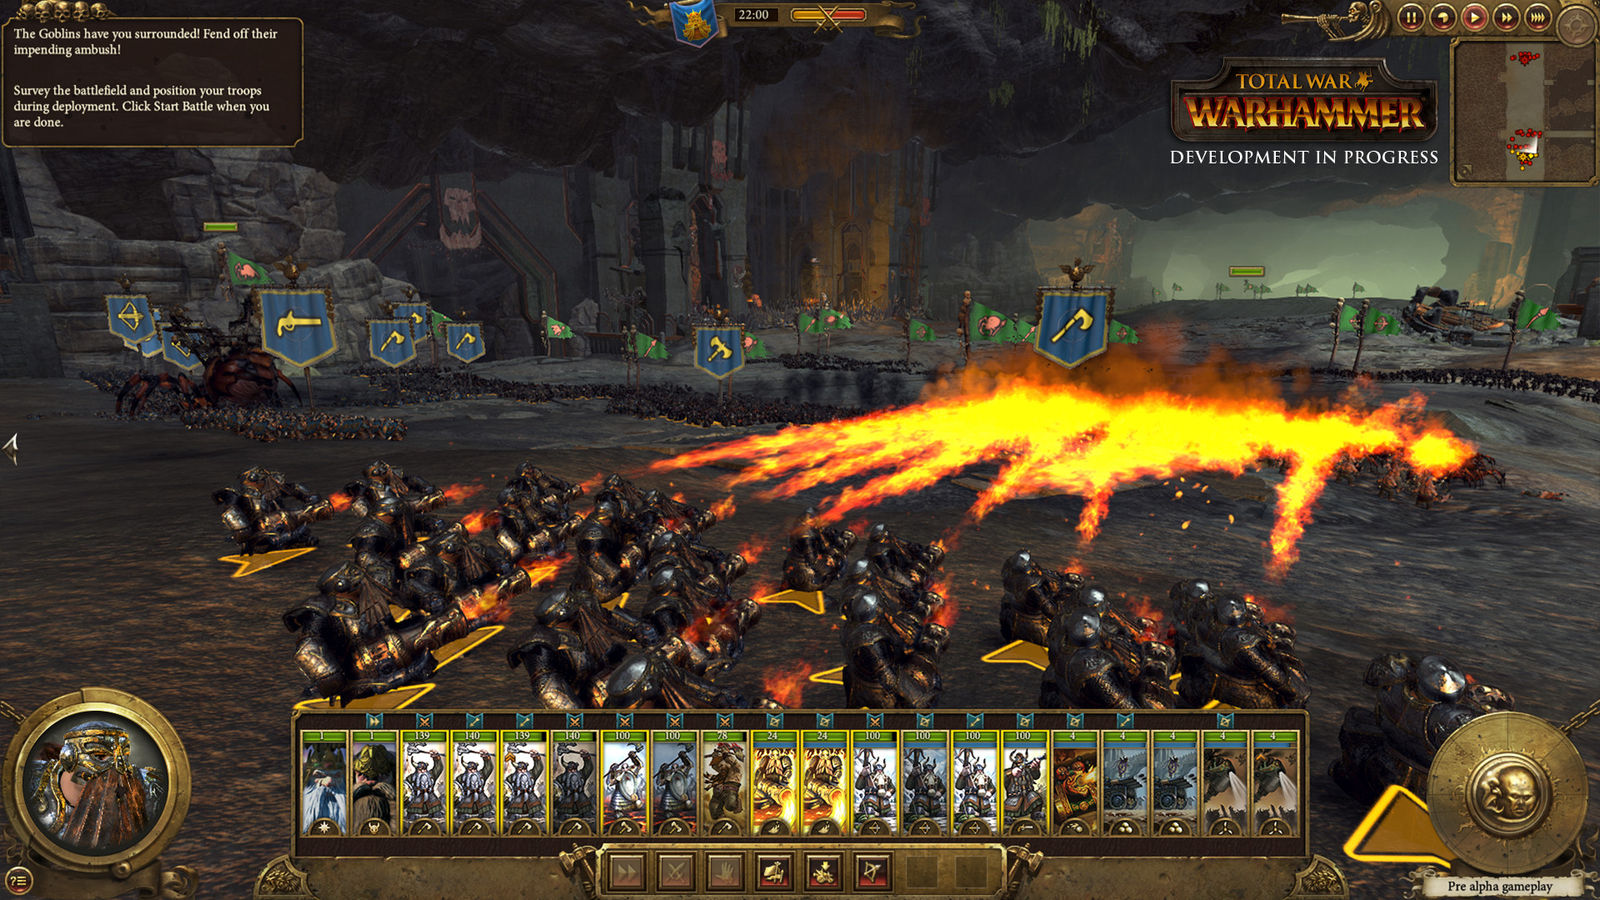 Total War: WARHAMMER (Steam) RU/CIS